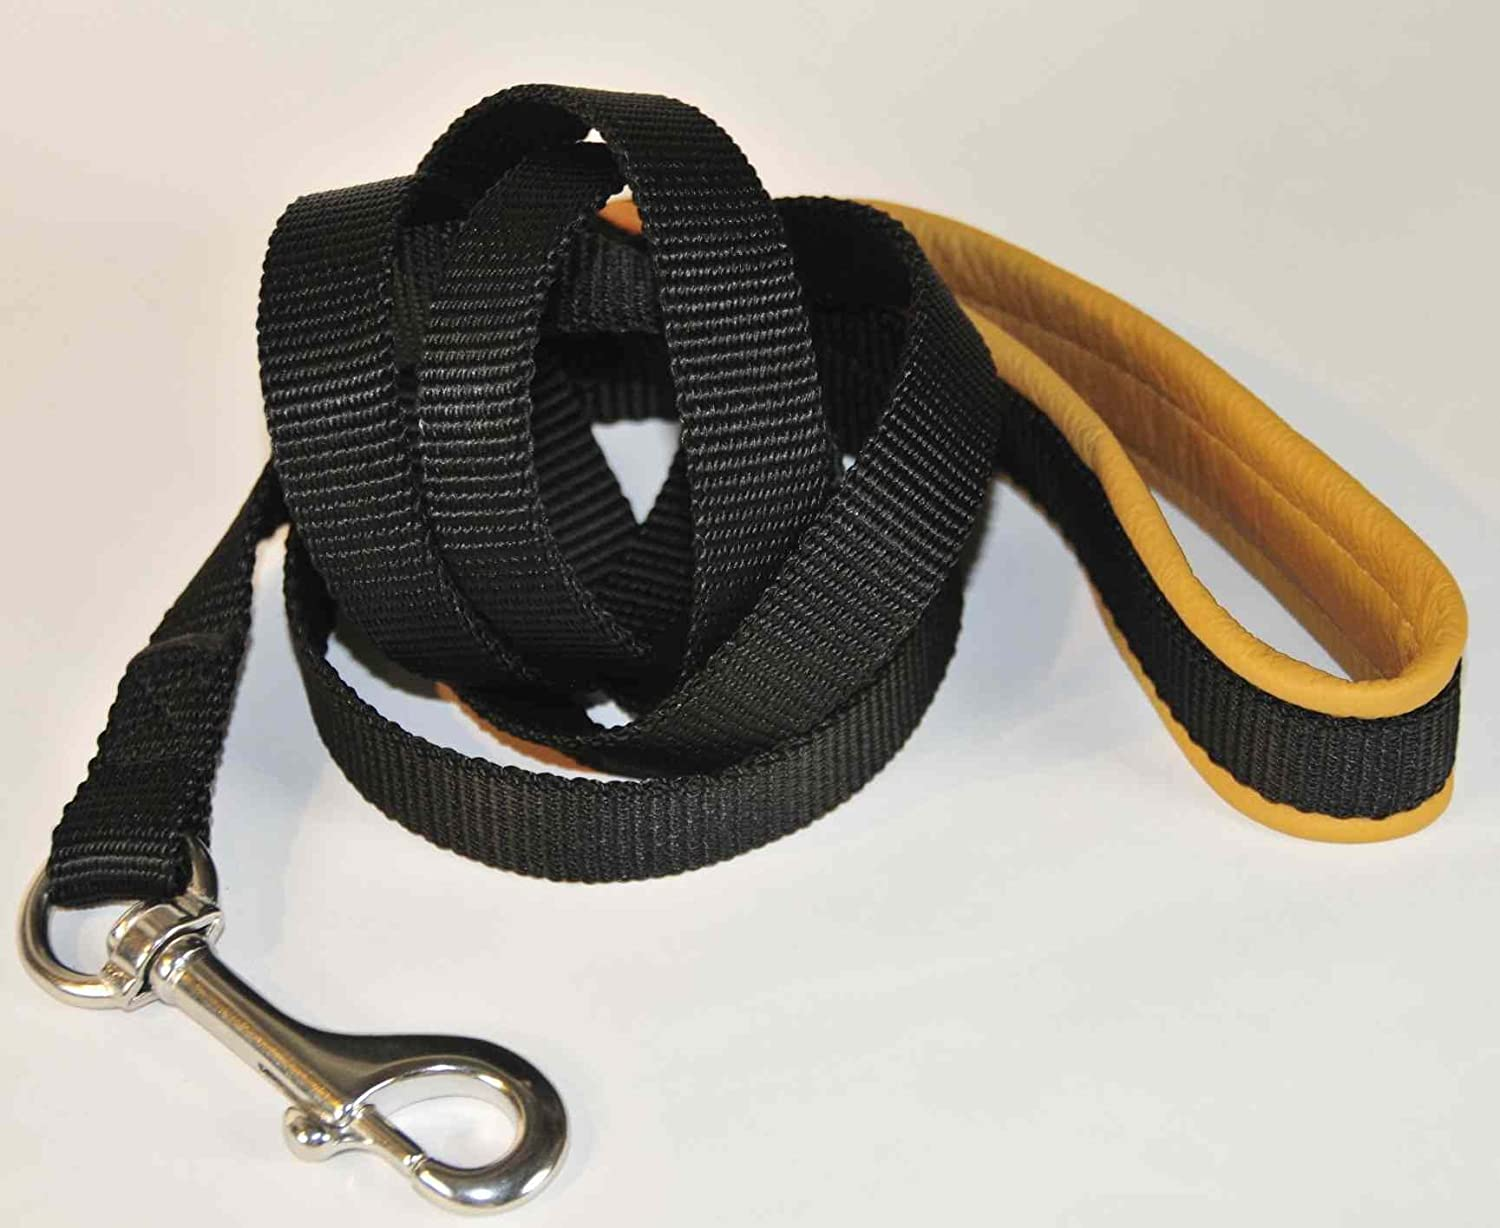 Dean & Tyler  Padded Puppy  Strong Nylon Dog Leash Stainless Steel Hardware Black With Brown Padding 152cm 2cm Width Nappa Leather Padded Handle Great for Everyday Use. Goes Great with Our NYLON Harnesses. Available Size 183cm, 152cm, 91cm, 61cm.